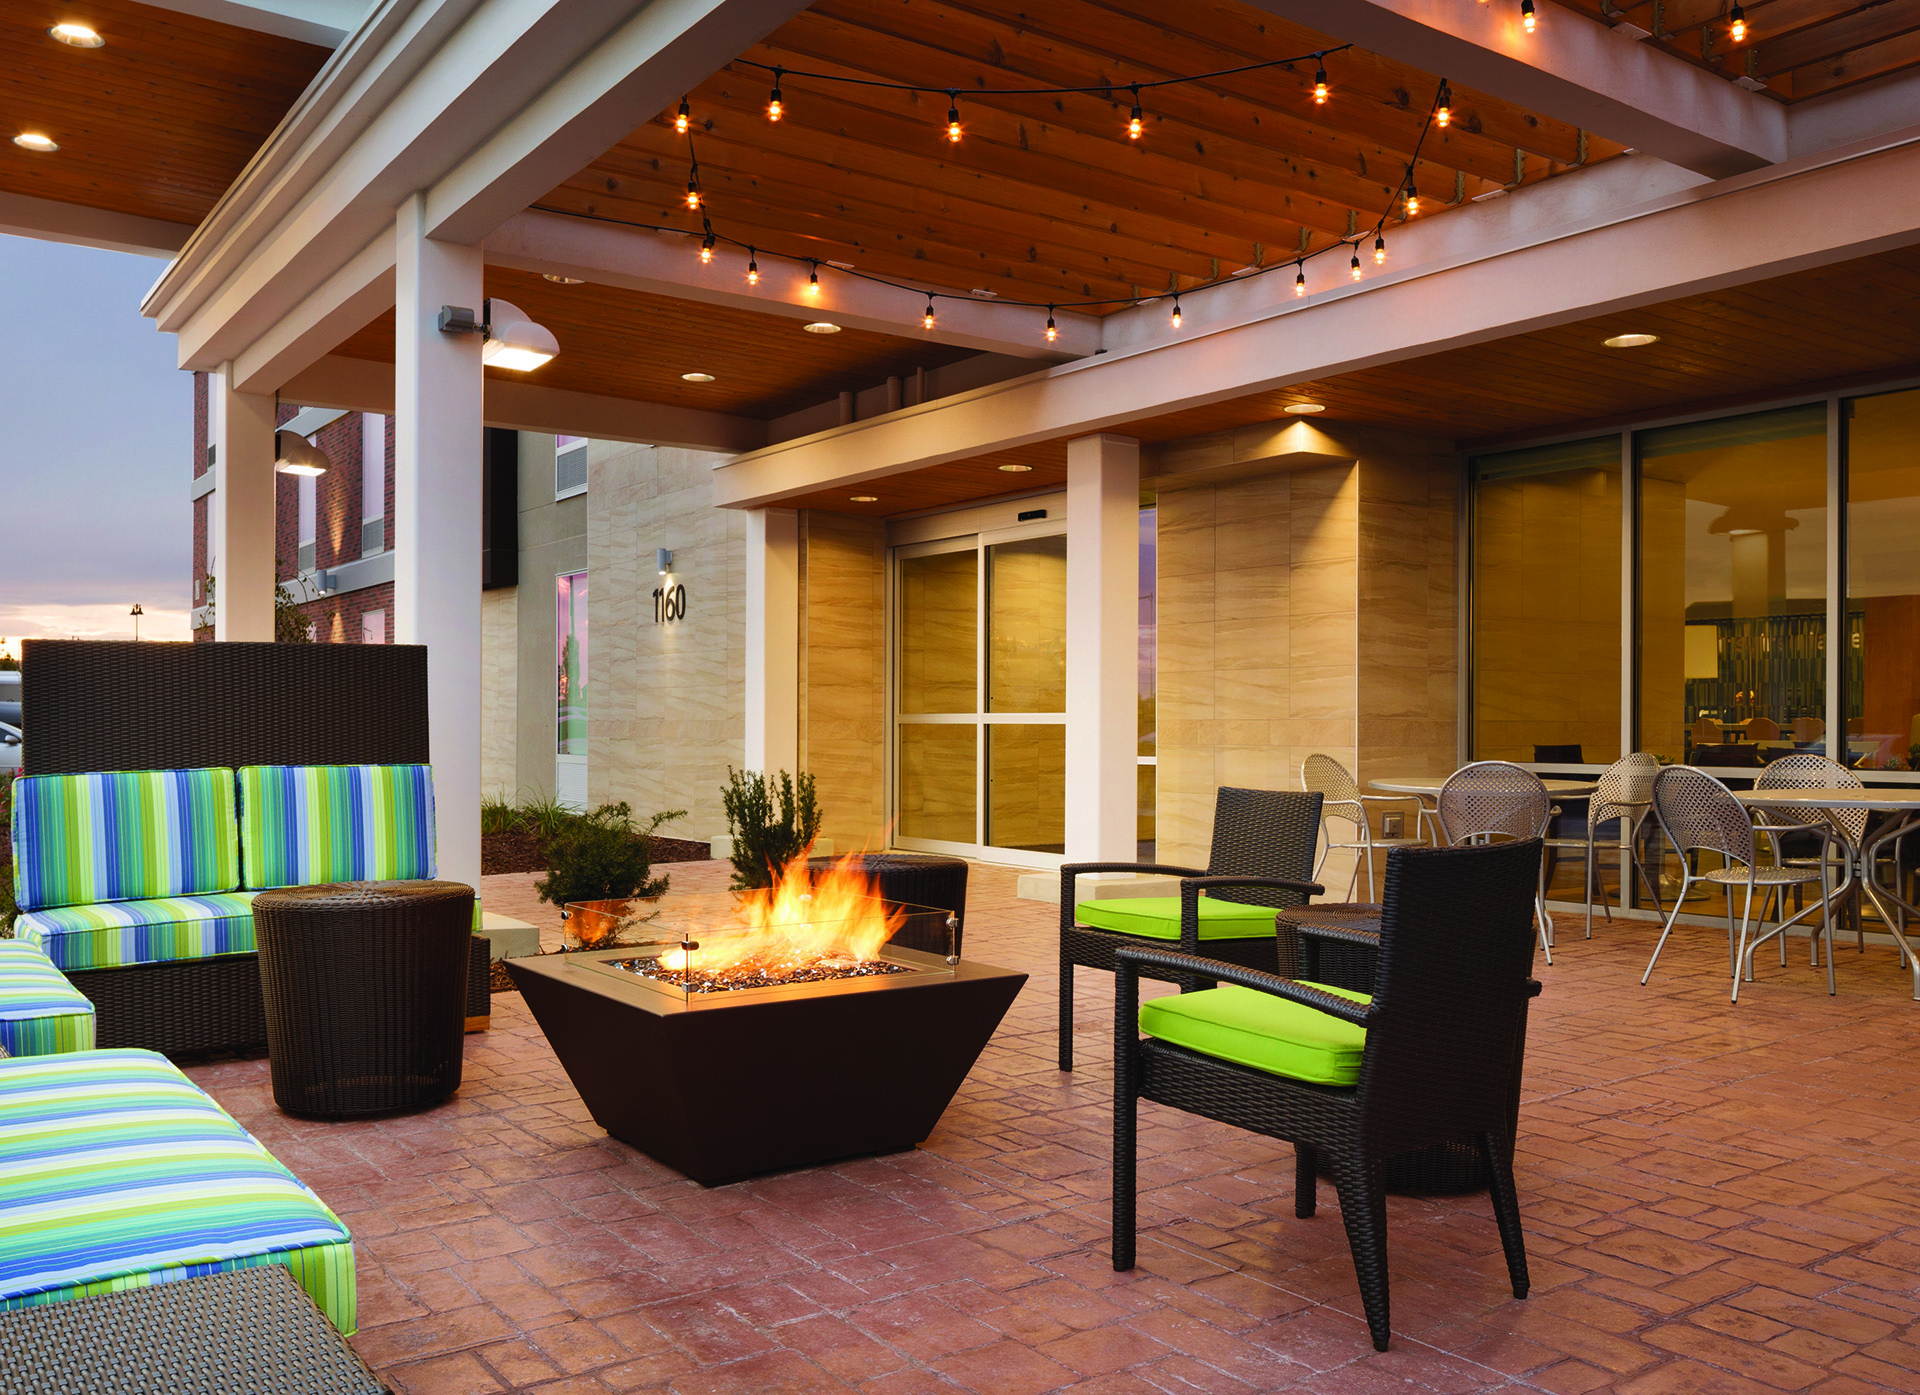 Home2 Suites By Hilton 171 Headwaters Construction Company